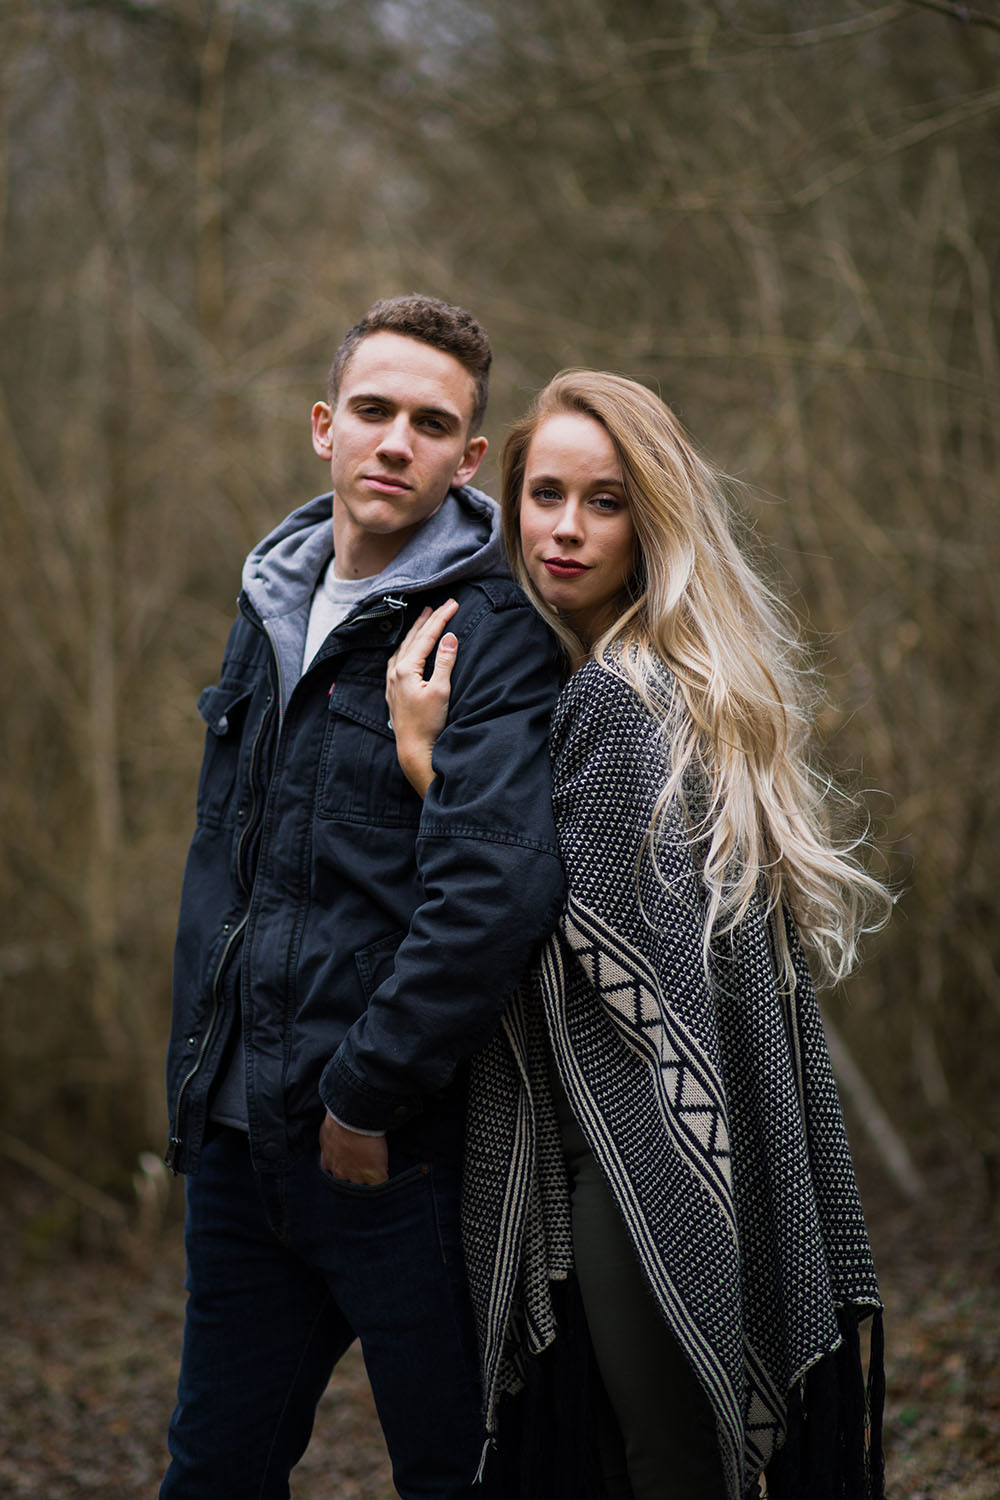 Shutter Up Studios | Engagement photographer in West Lafayette Indiana | Fall winter couples photo session in the woods at Prophetstown State Park